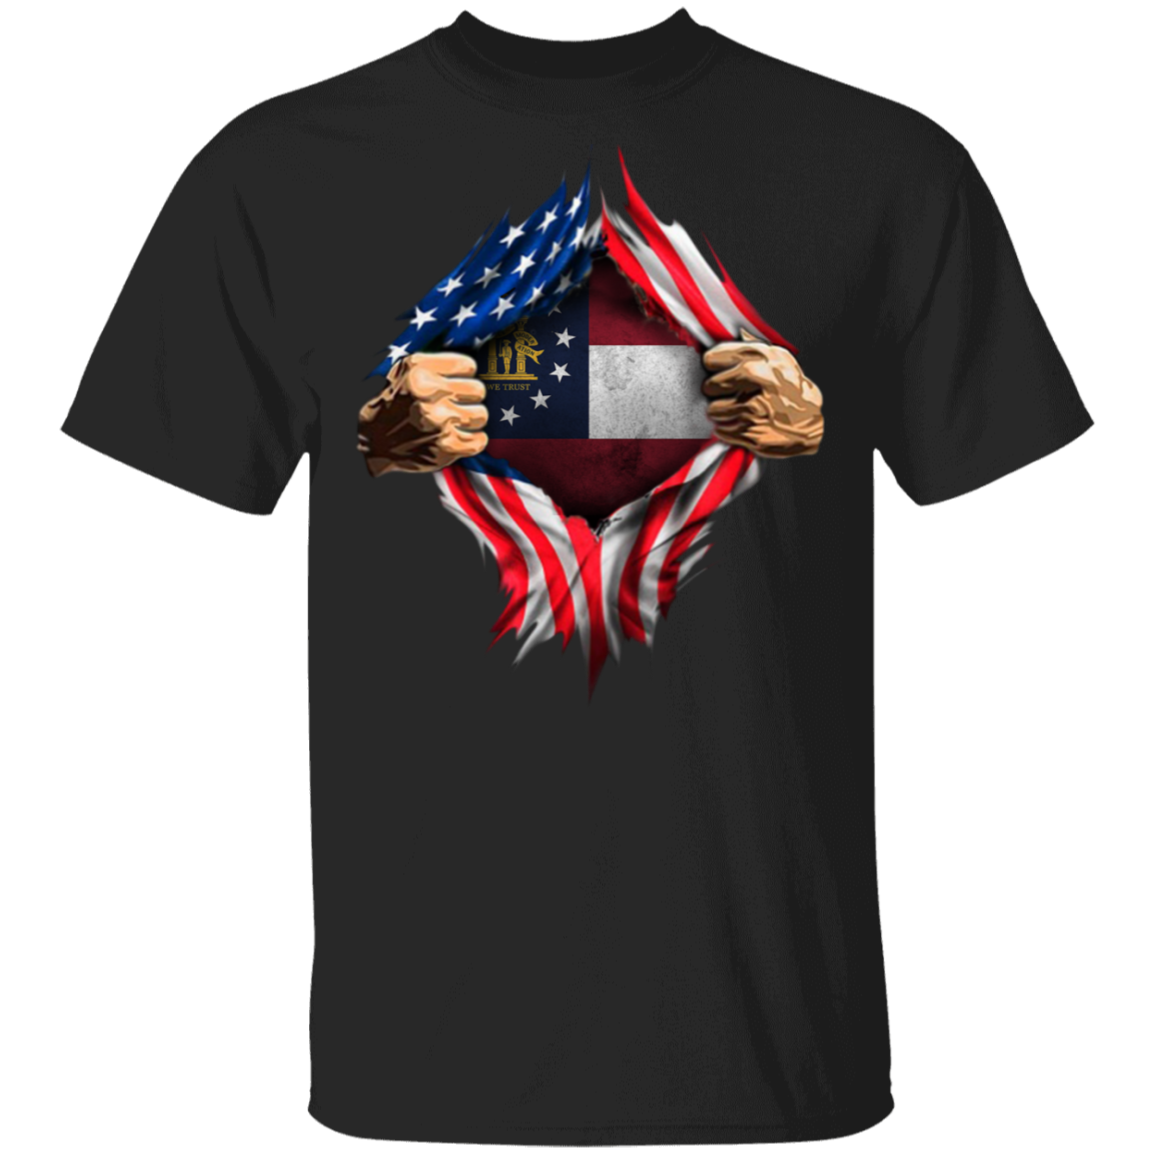 Georgia Heartbeat Inside American Flag T-Shirt 4th Of July Shirts Patriotic Gifts For Him